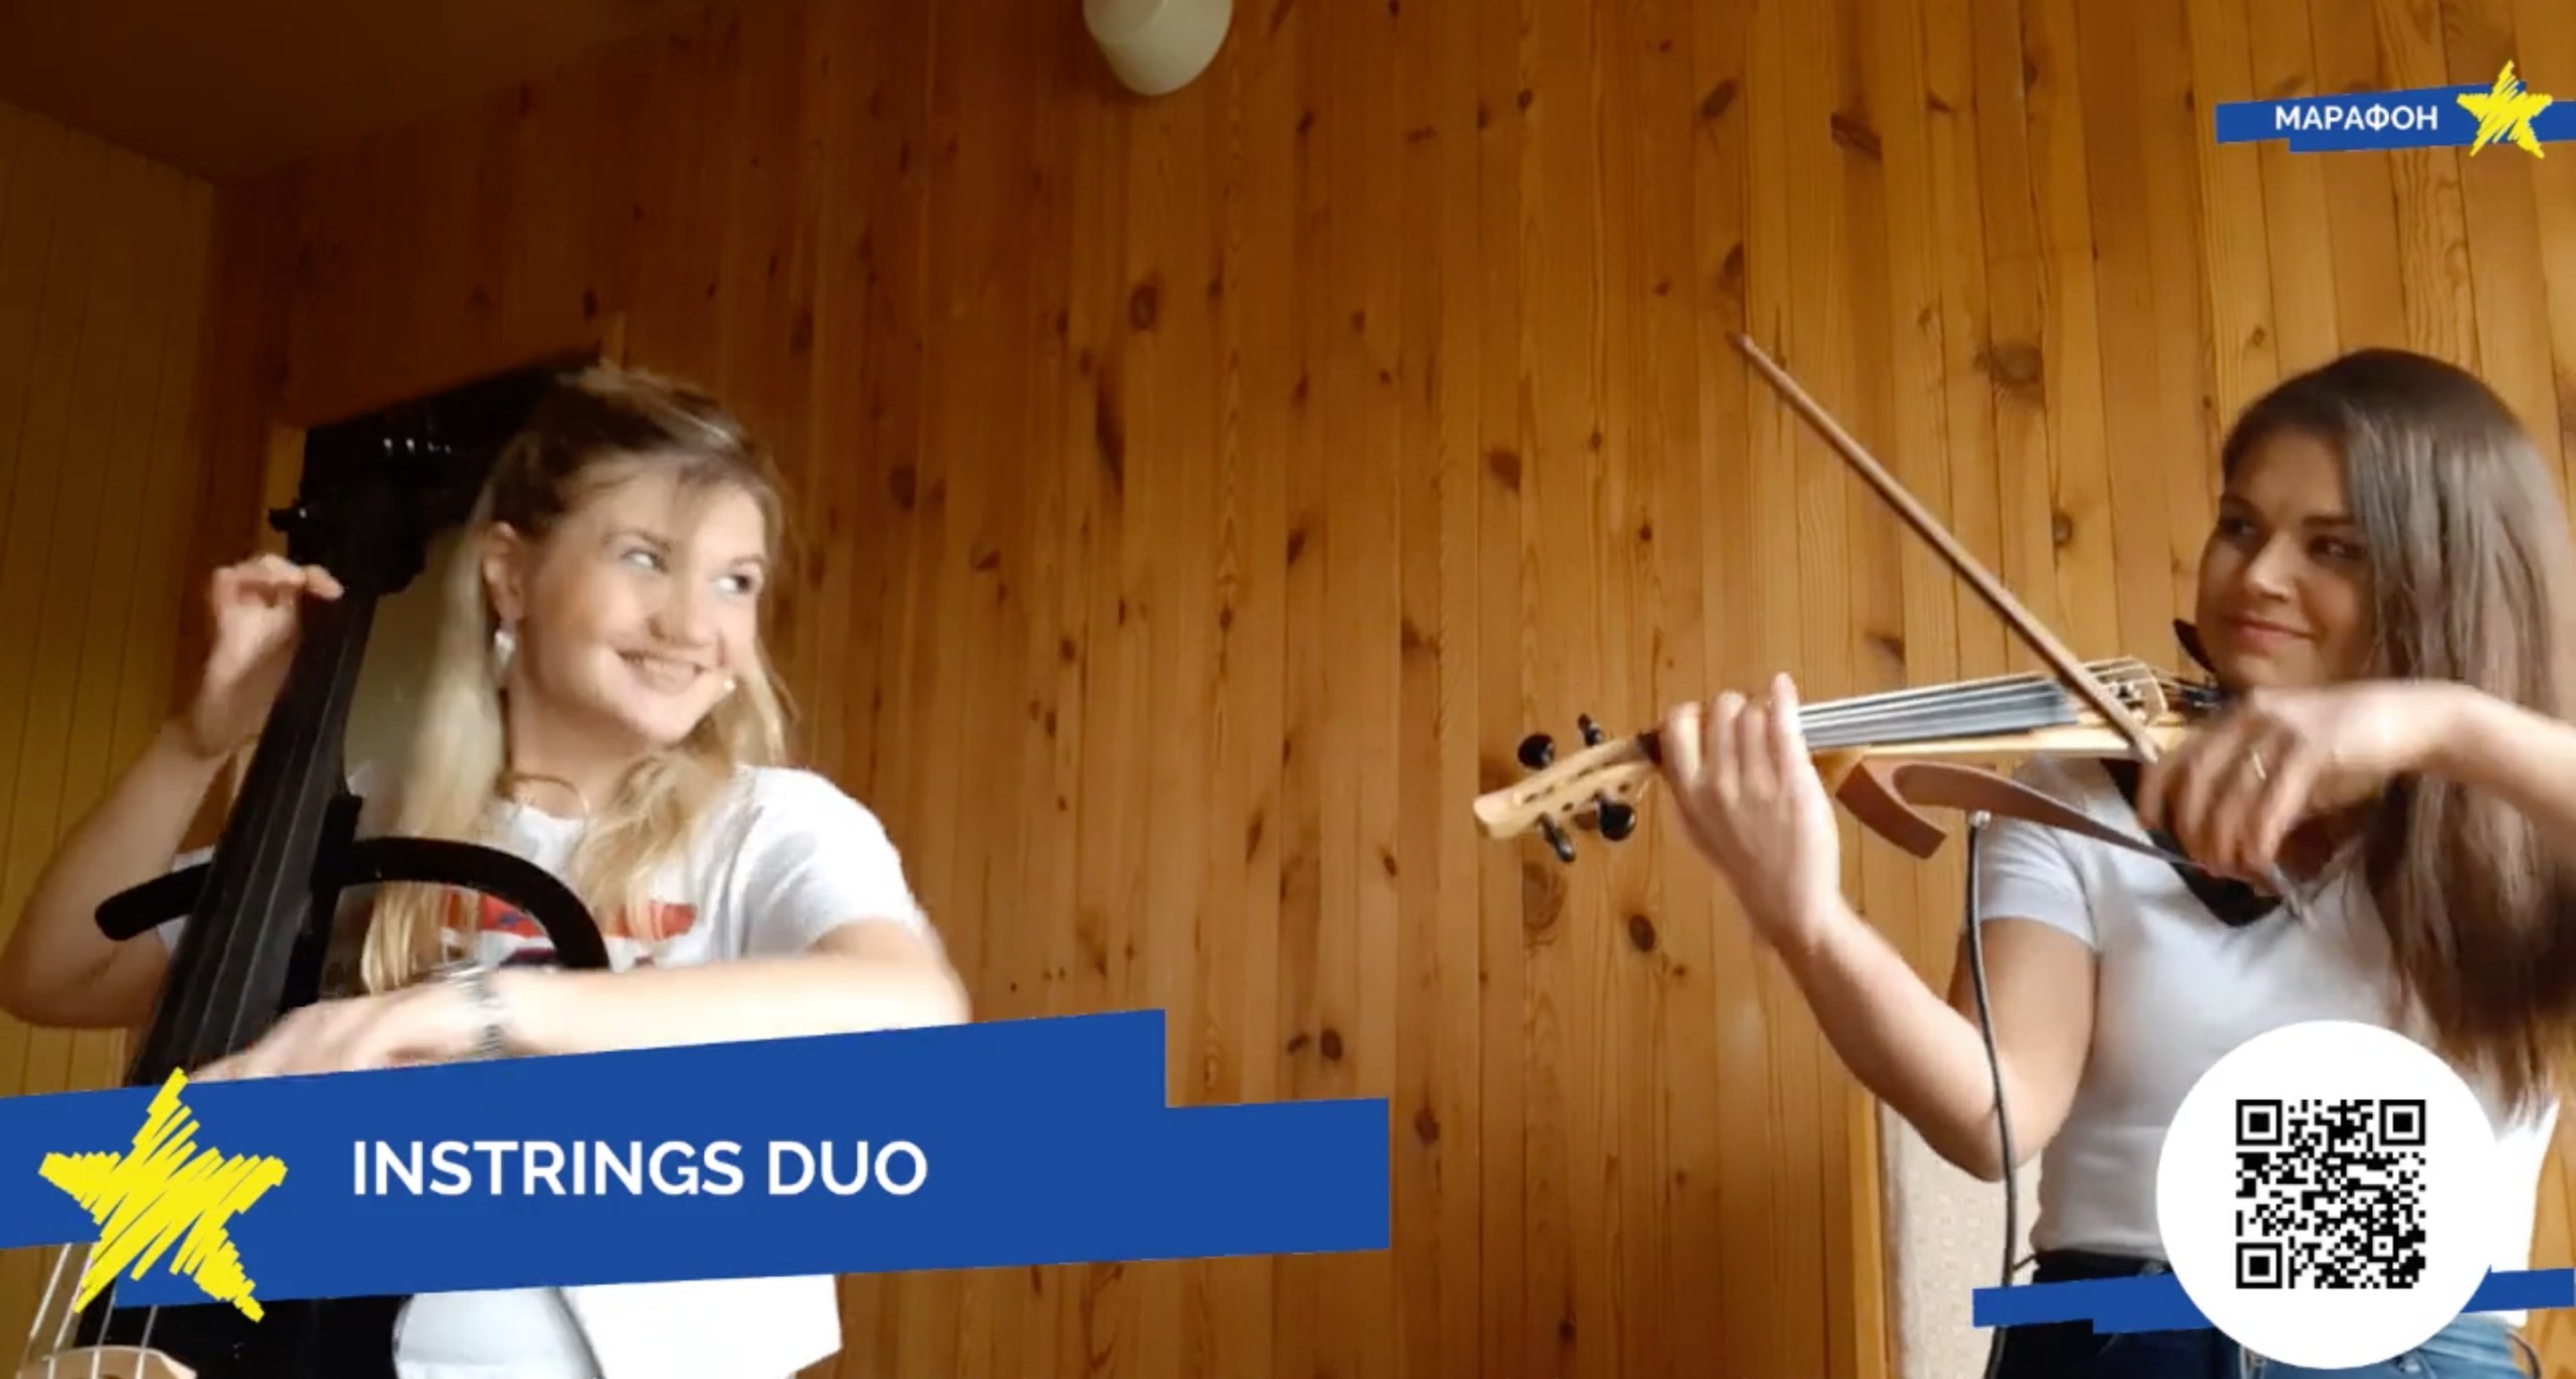 Instrings duo on Europe day